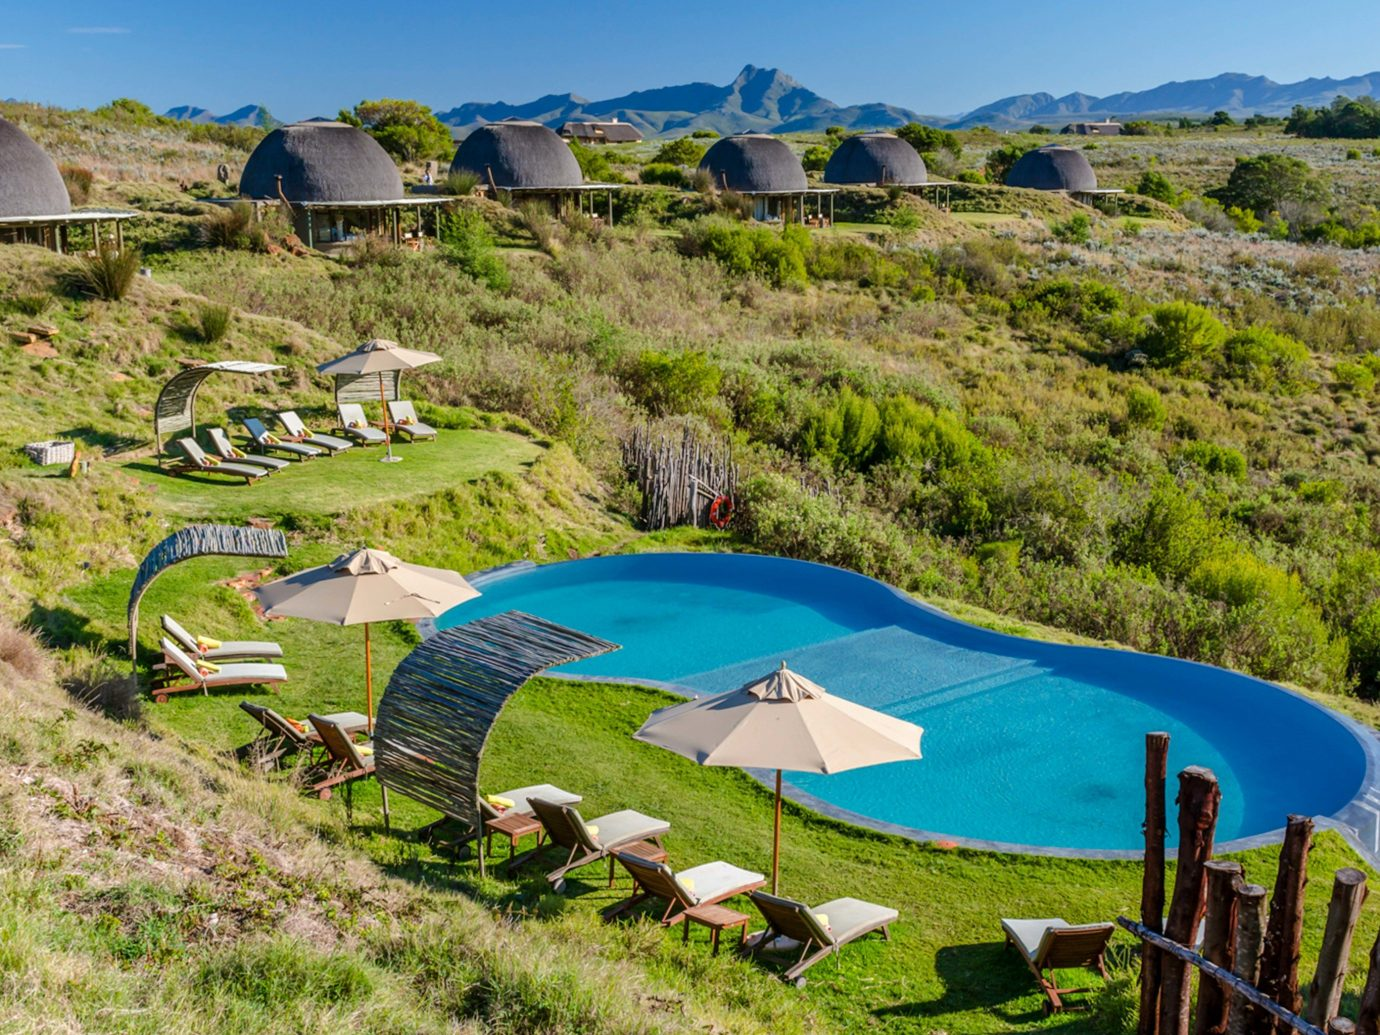 Gondwana Game Reserve; property leisure real estate rural area Resort tree estate landscape swimming pool plant tourism grass sky aerial photography bay land lot water Villa house Village